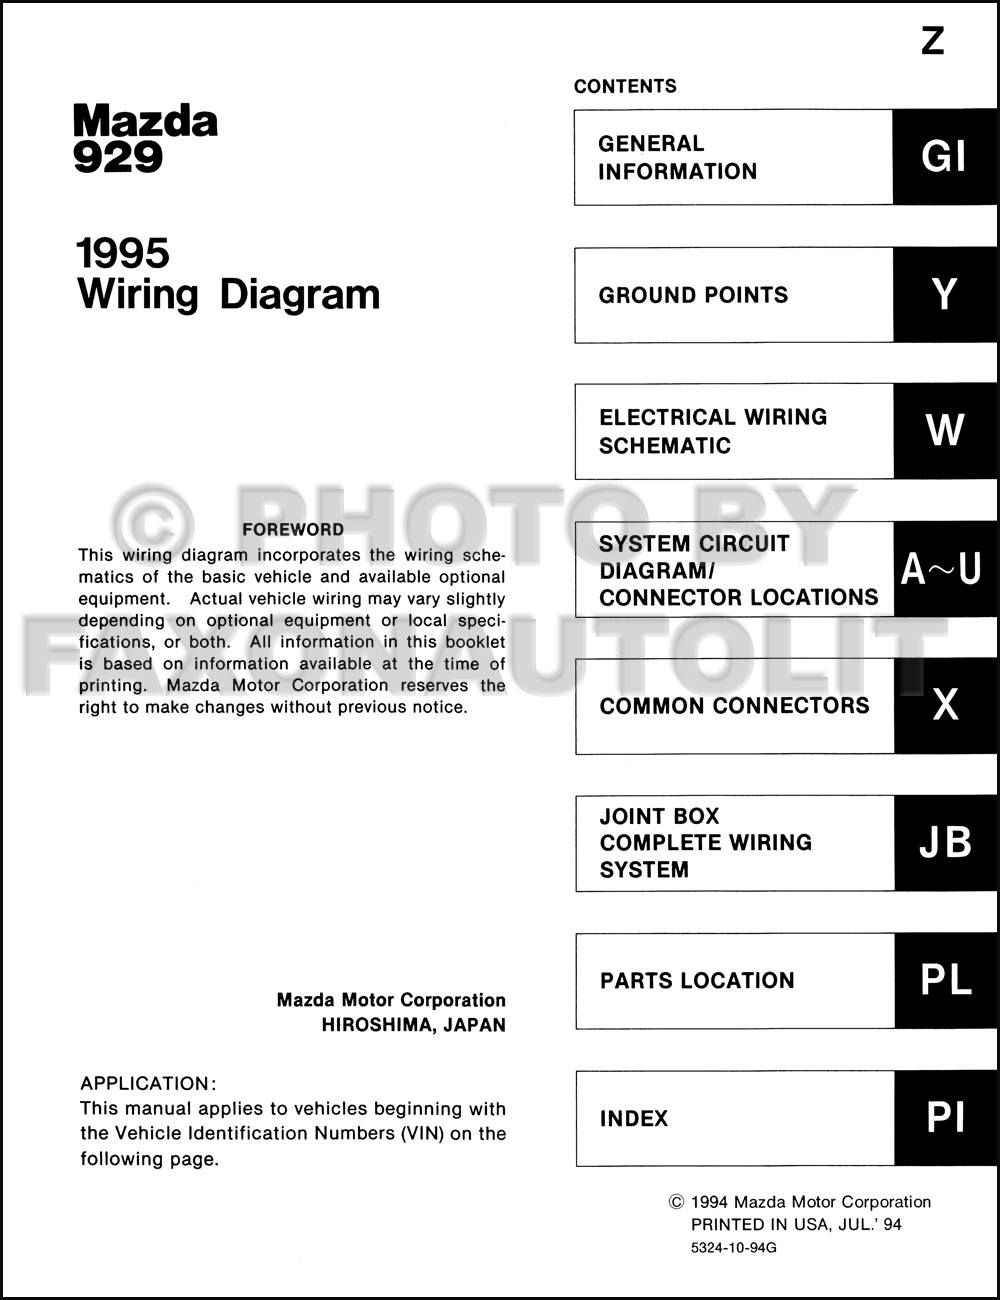 1995 Mazda 929 Wiring Diagram Manual Original